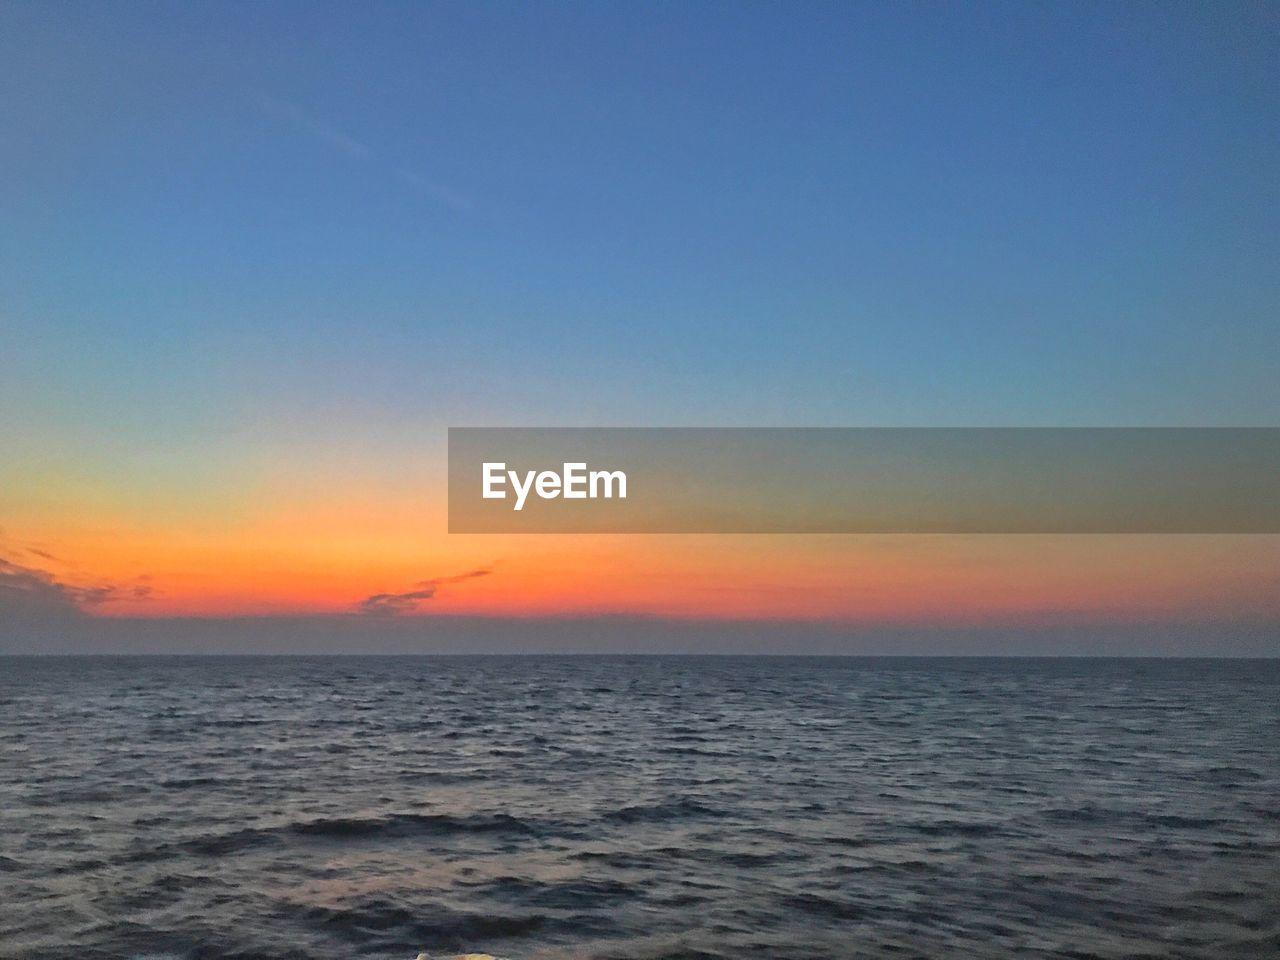 sky, sea, sunset, water, scenics - nature, beauty in nature, horizon over water, horizon, tranquility, tranquil scene, waterfront, idyllic, orange color, no people, copy space, nature, non-urban scene, clear sky, outdoors